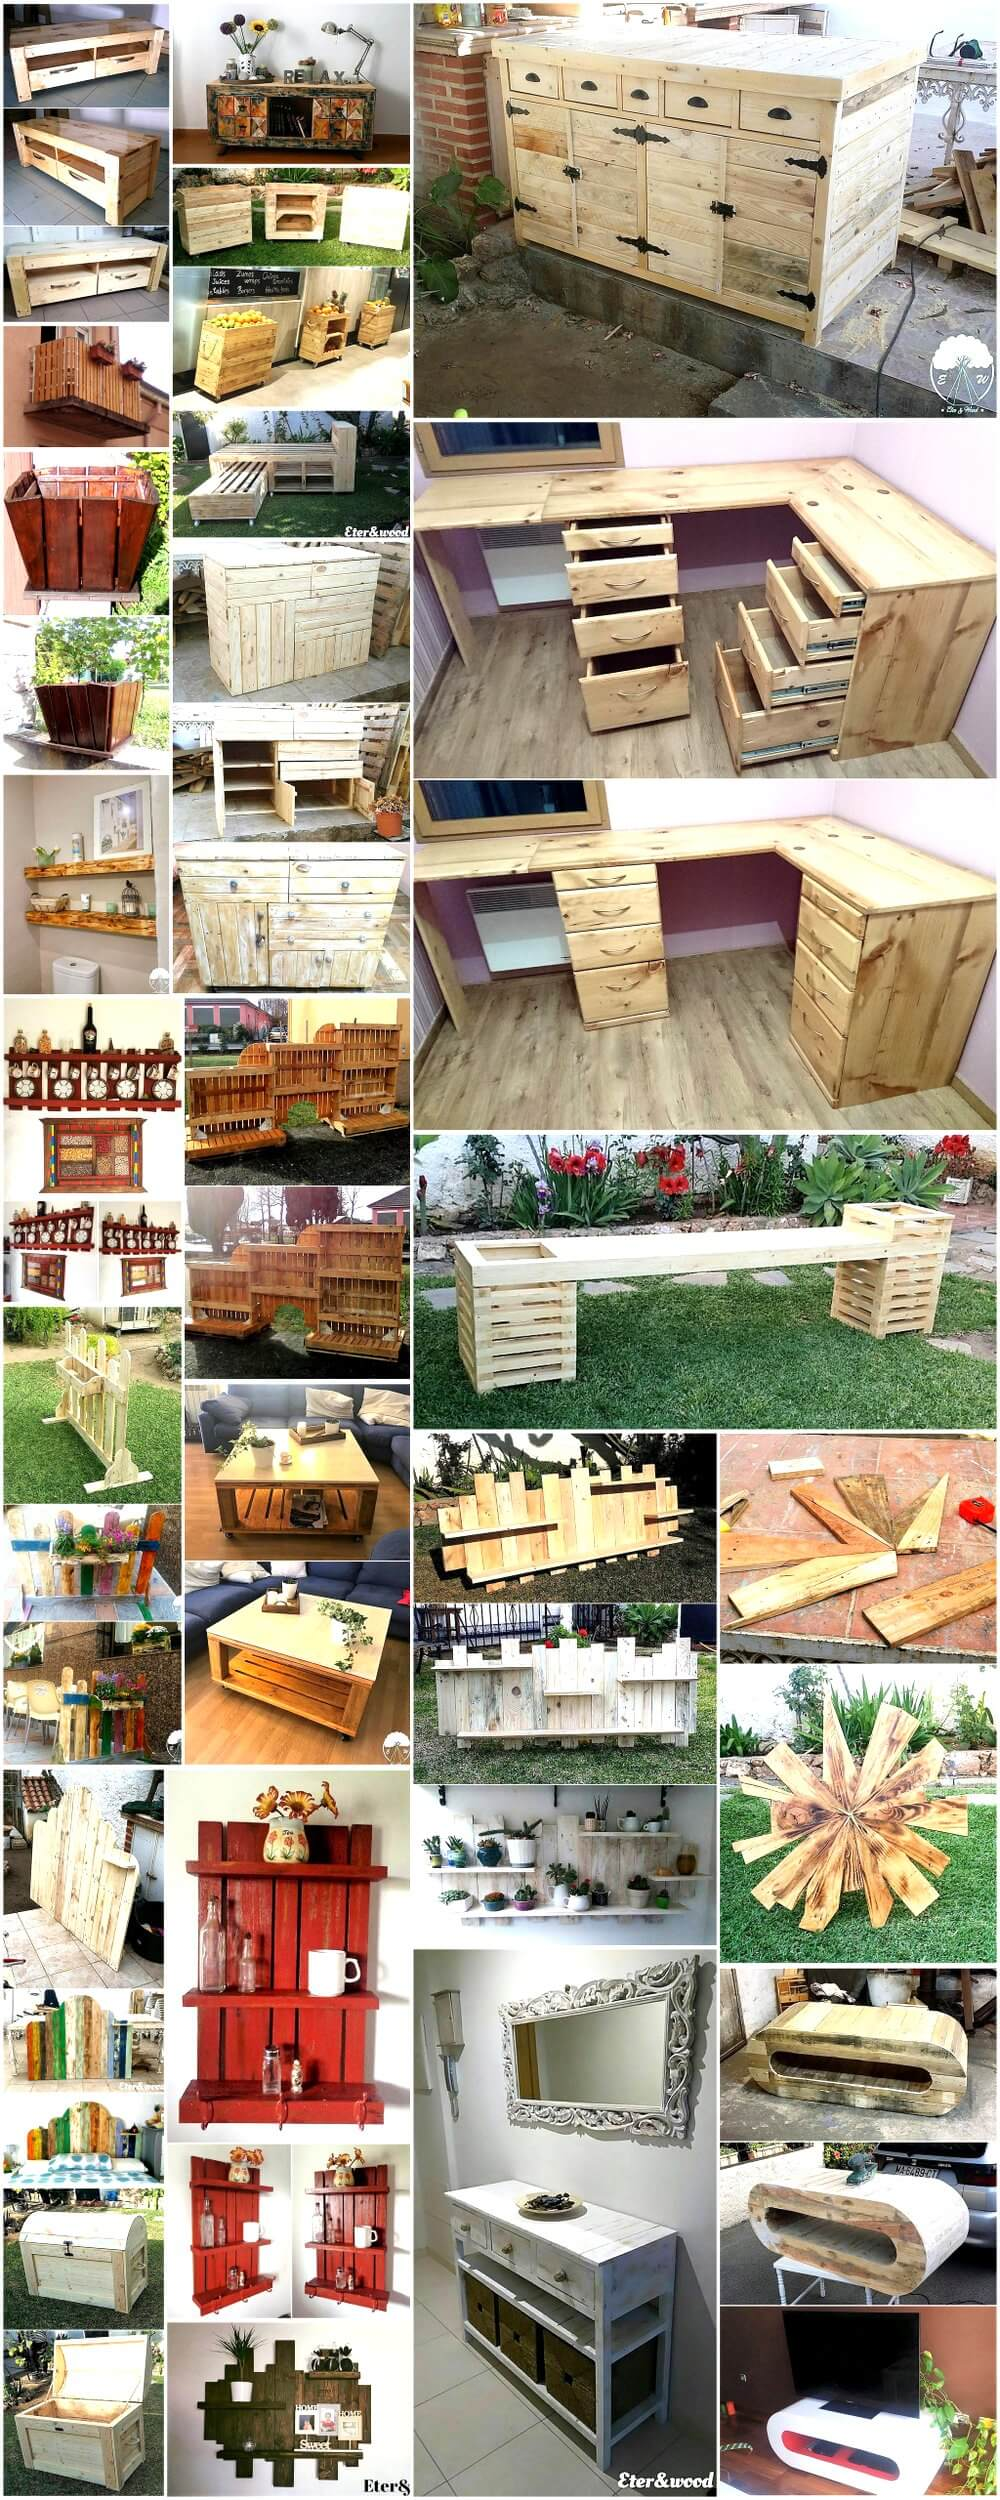 DIY Crafting Ideas with Recycled Wood Pallets 1